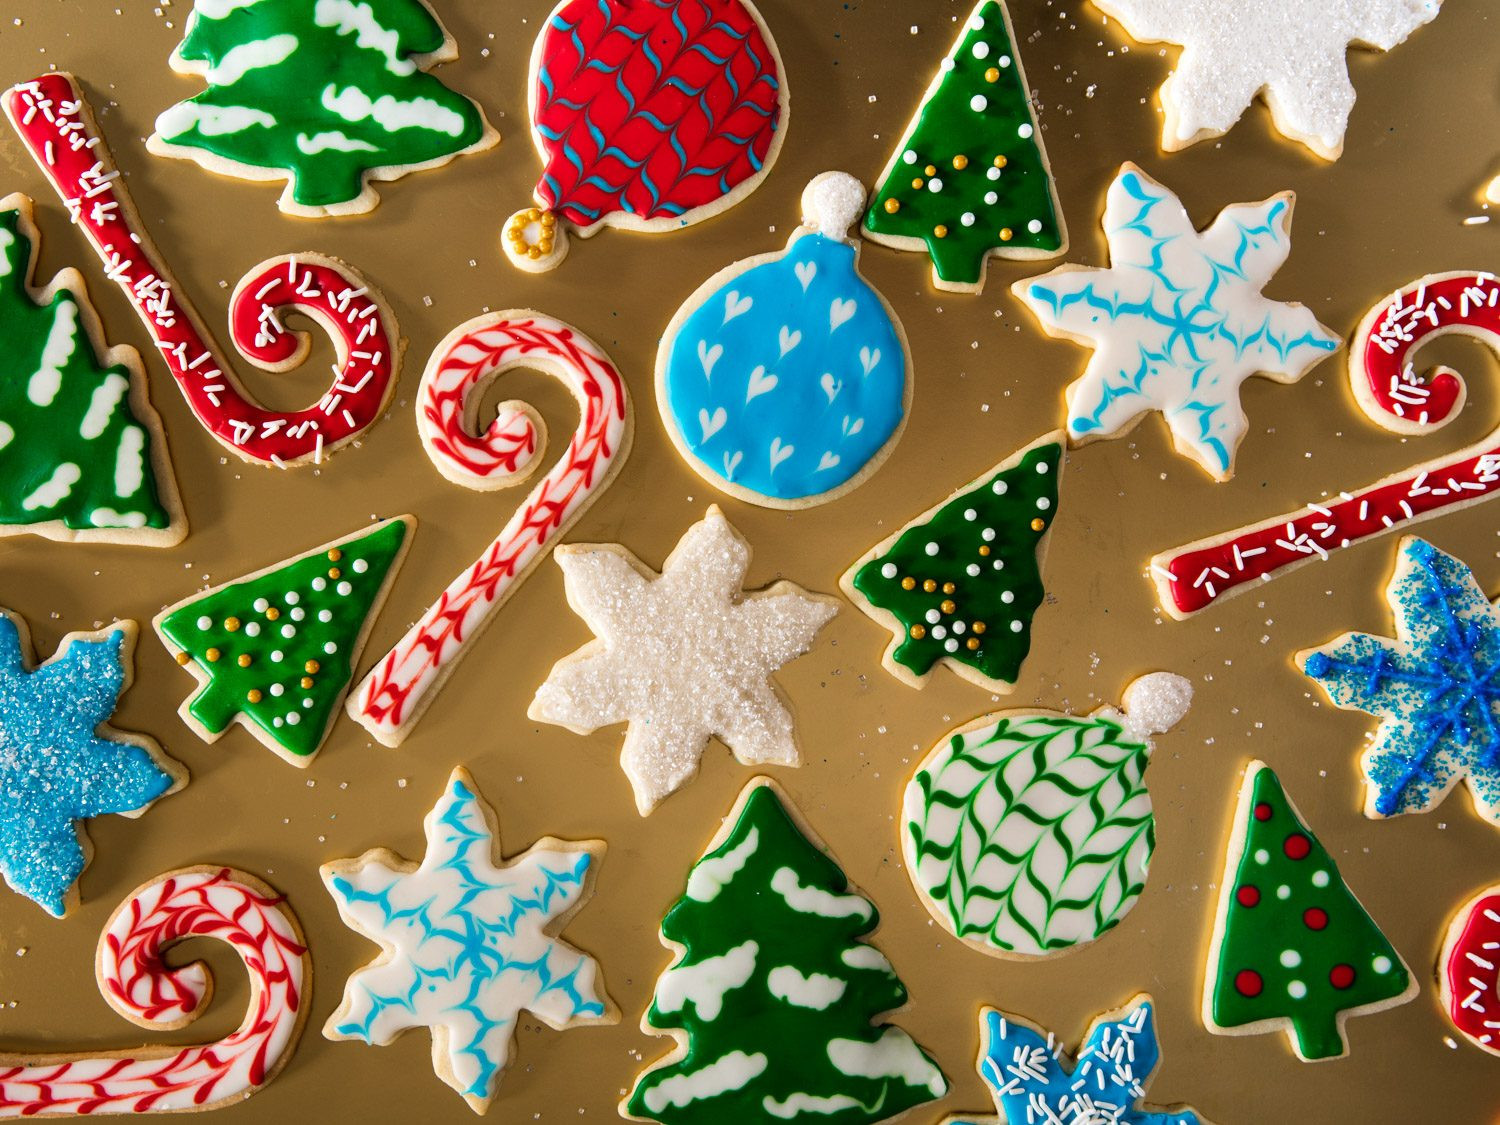 Pictures Of Christmas Cookies Decorated  A Royal Icing Tutorial Decorate Christmas Cookies Like a